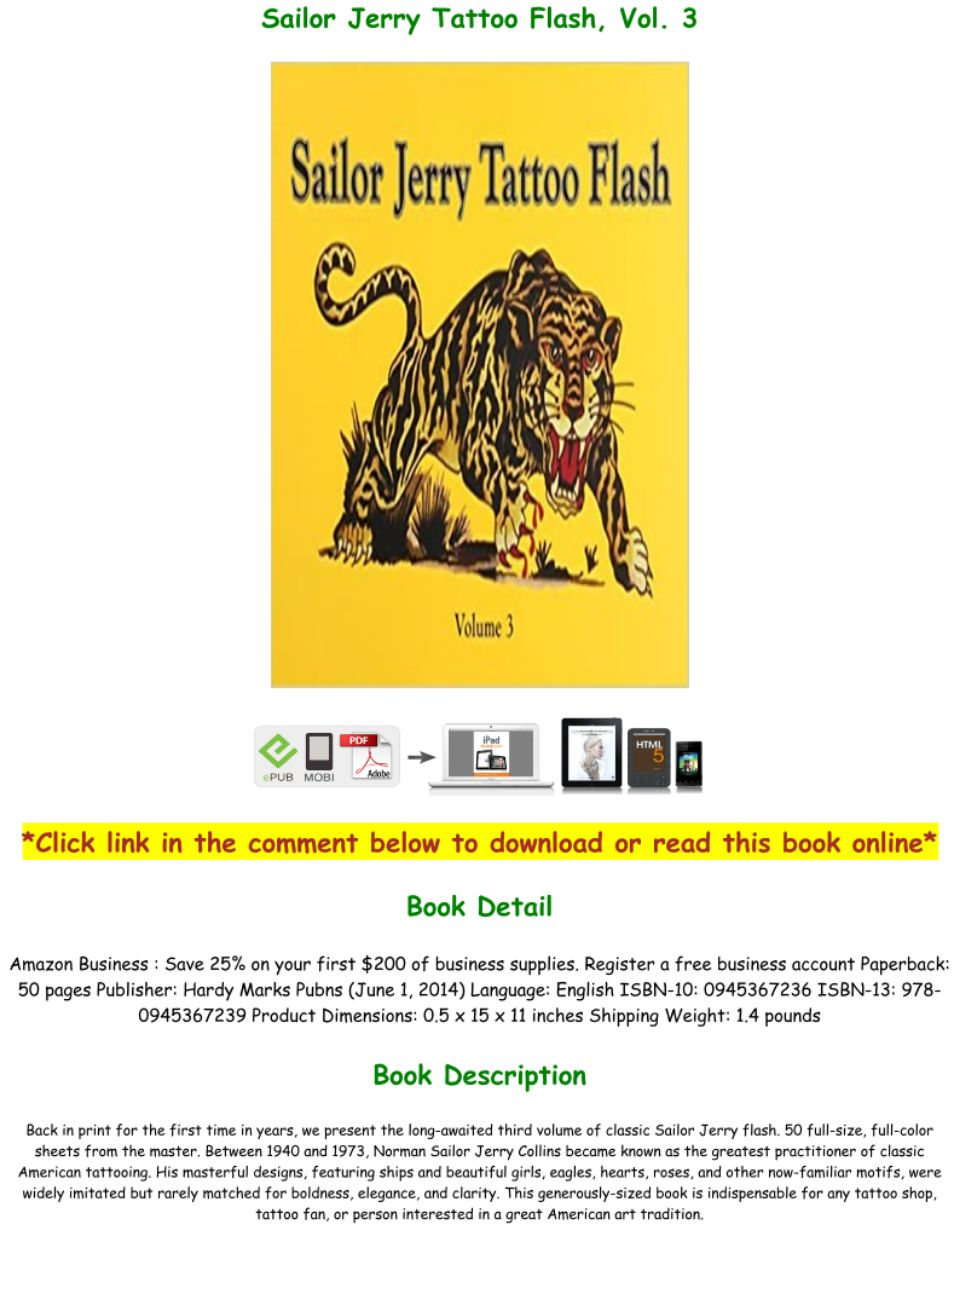 Download Pdf Sailor Jerry Tattoo Flash Vol 3 Full Pages Text Images Music Video Glogster Edu Interactive Multimedia Posters